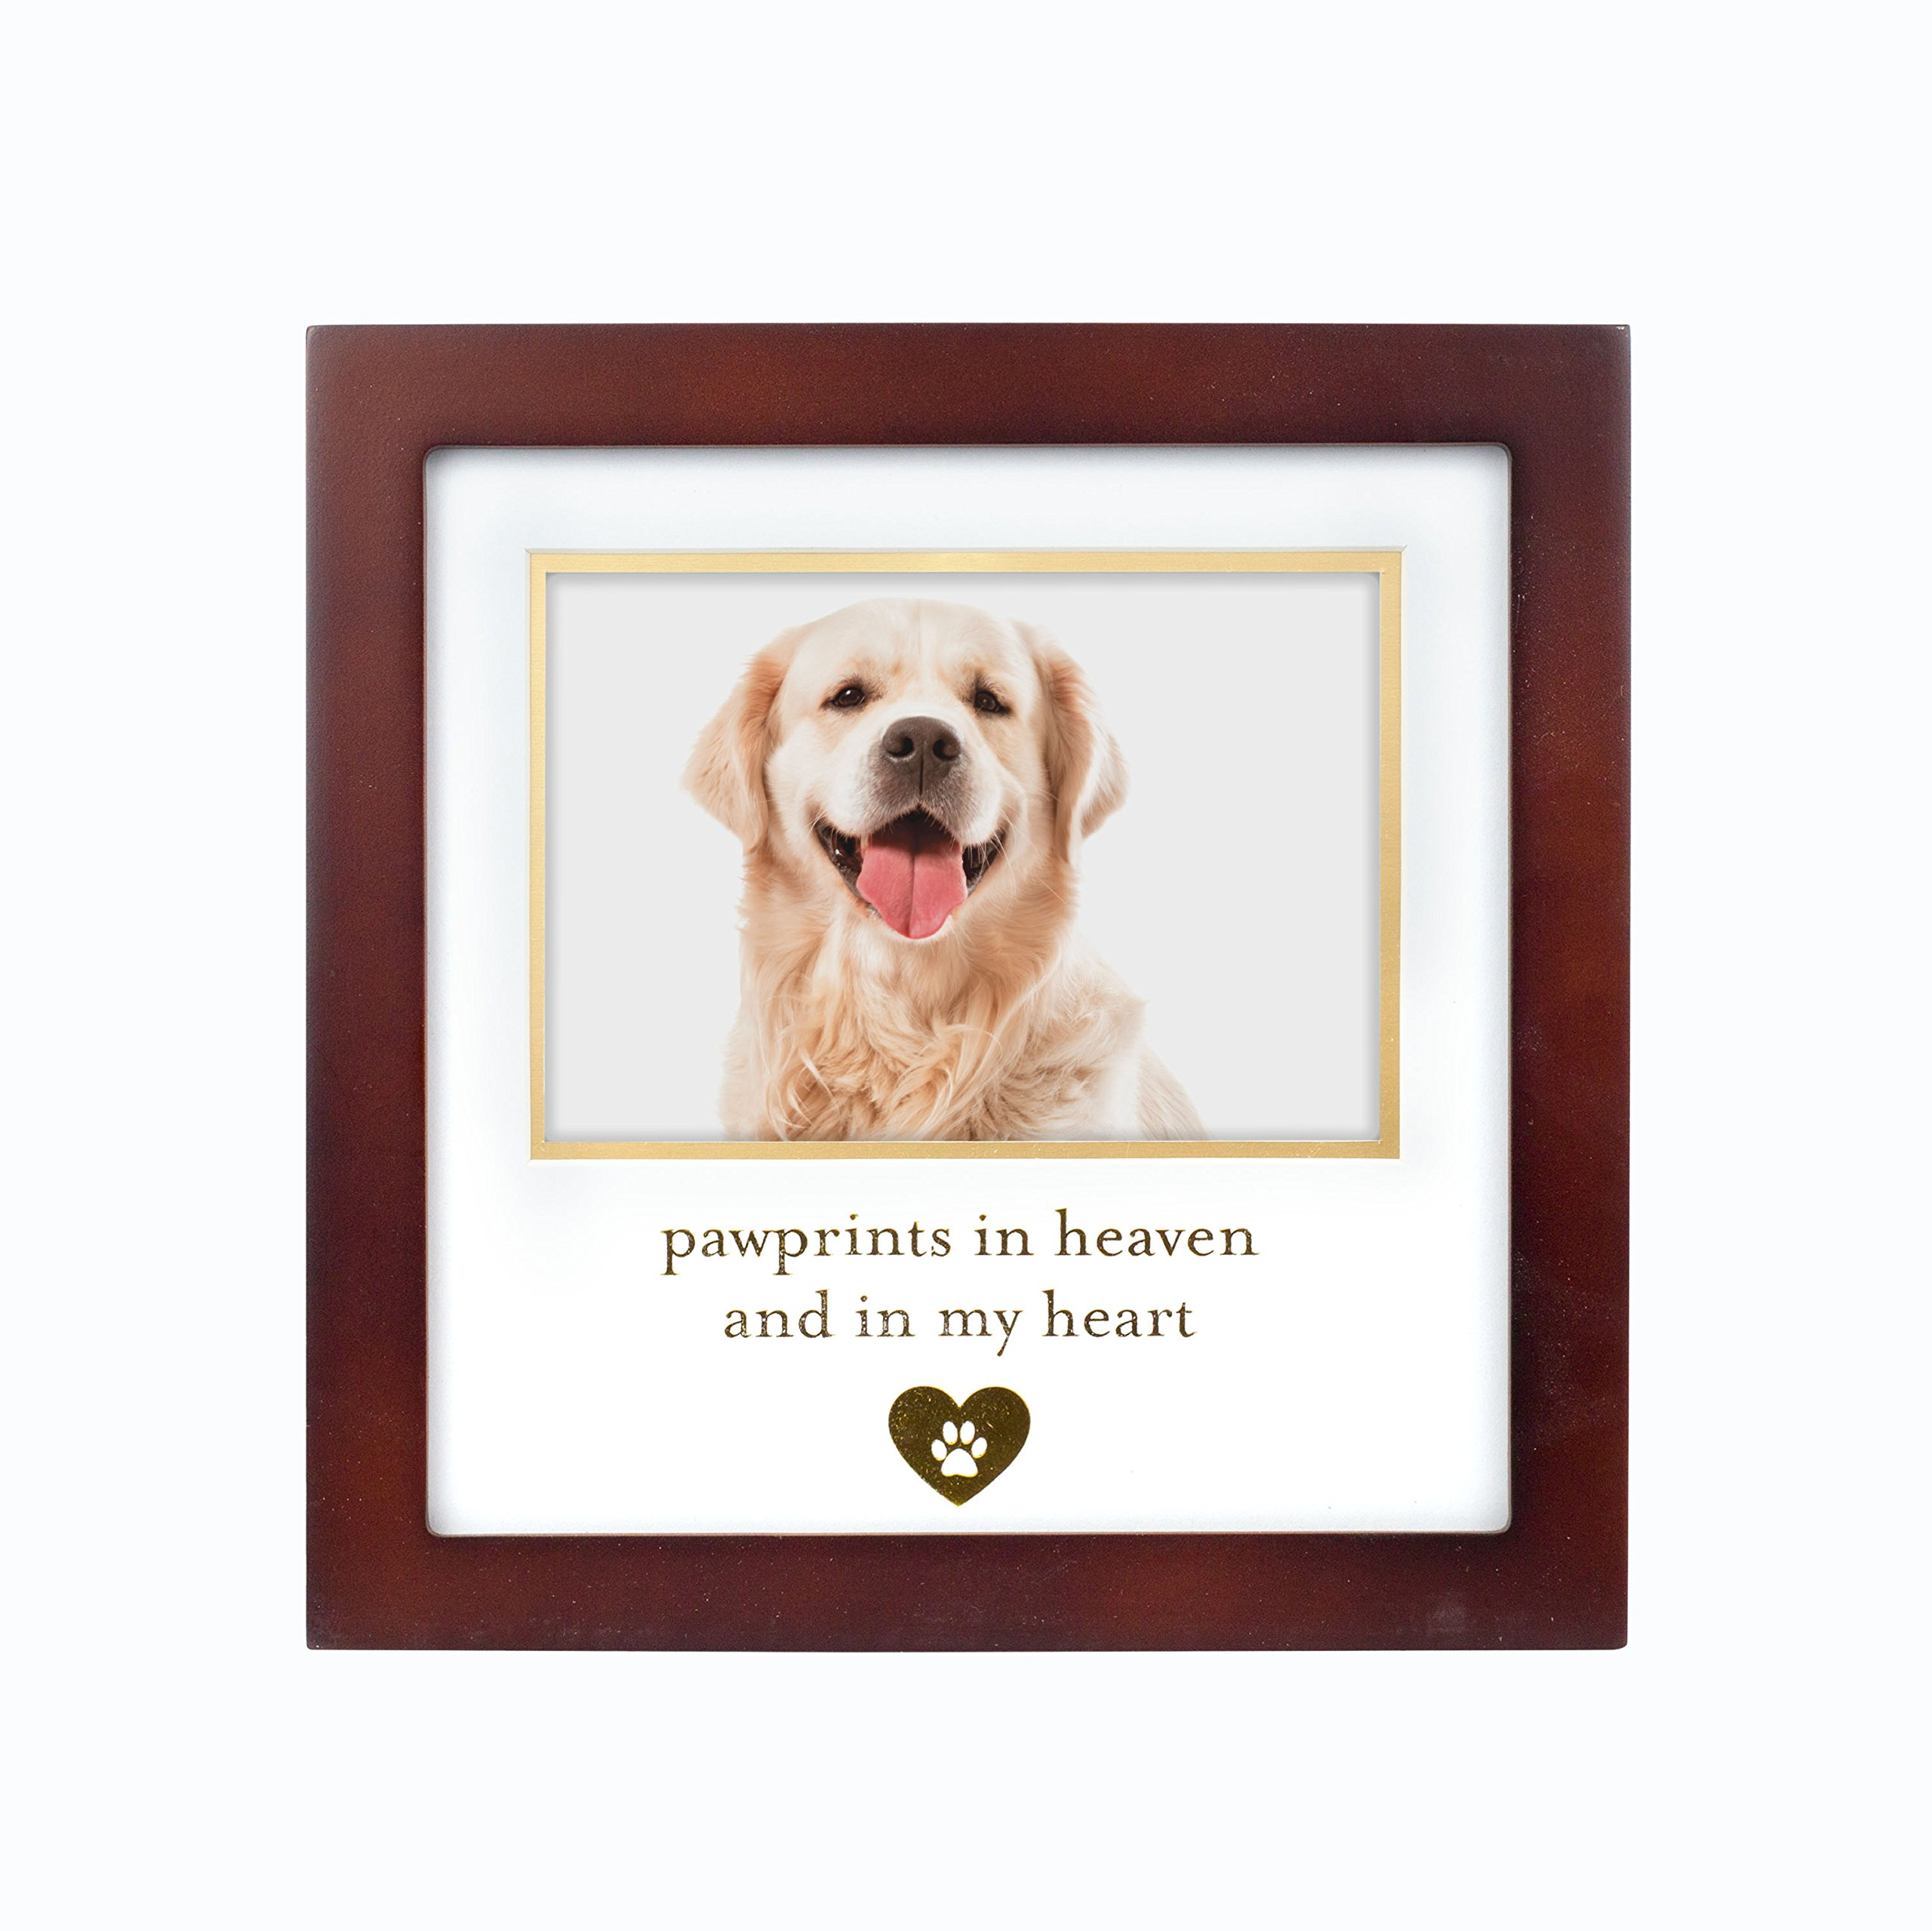 Pearhead 86017 Pet Keepsake Memorial Frame, Perfect Pet Keepsake or Memorial Gift.7 lb, Brown